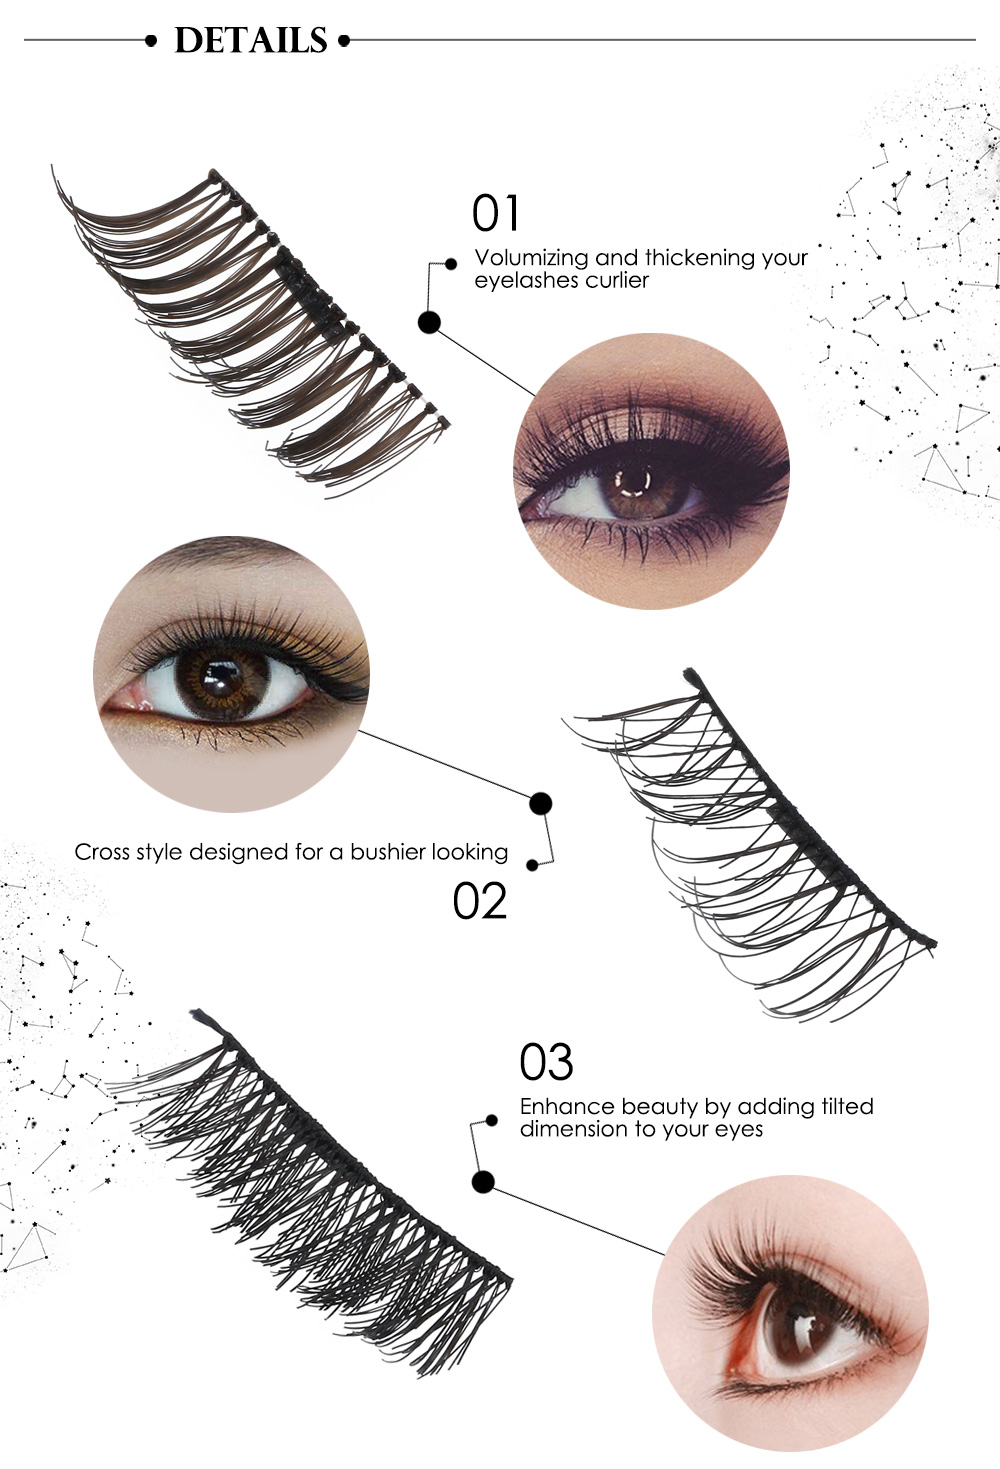 d336d182aad 2 Pairs Natural Magnetic False Eyelashes Extension Eye Beauty Makeup  Accessories- #05